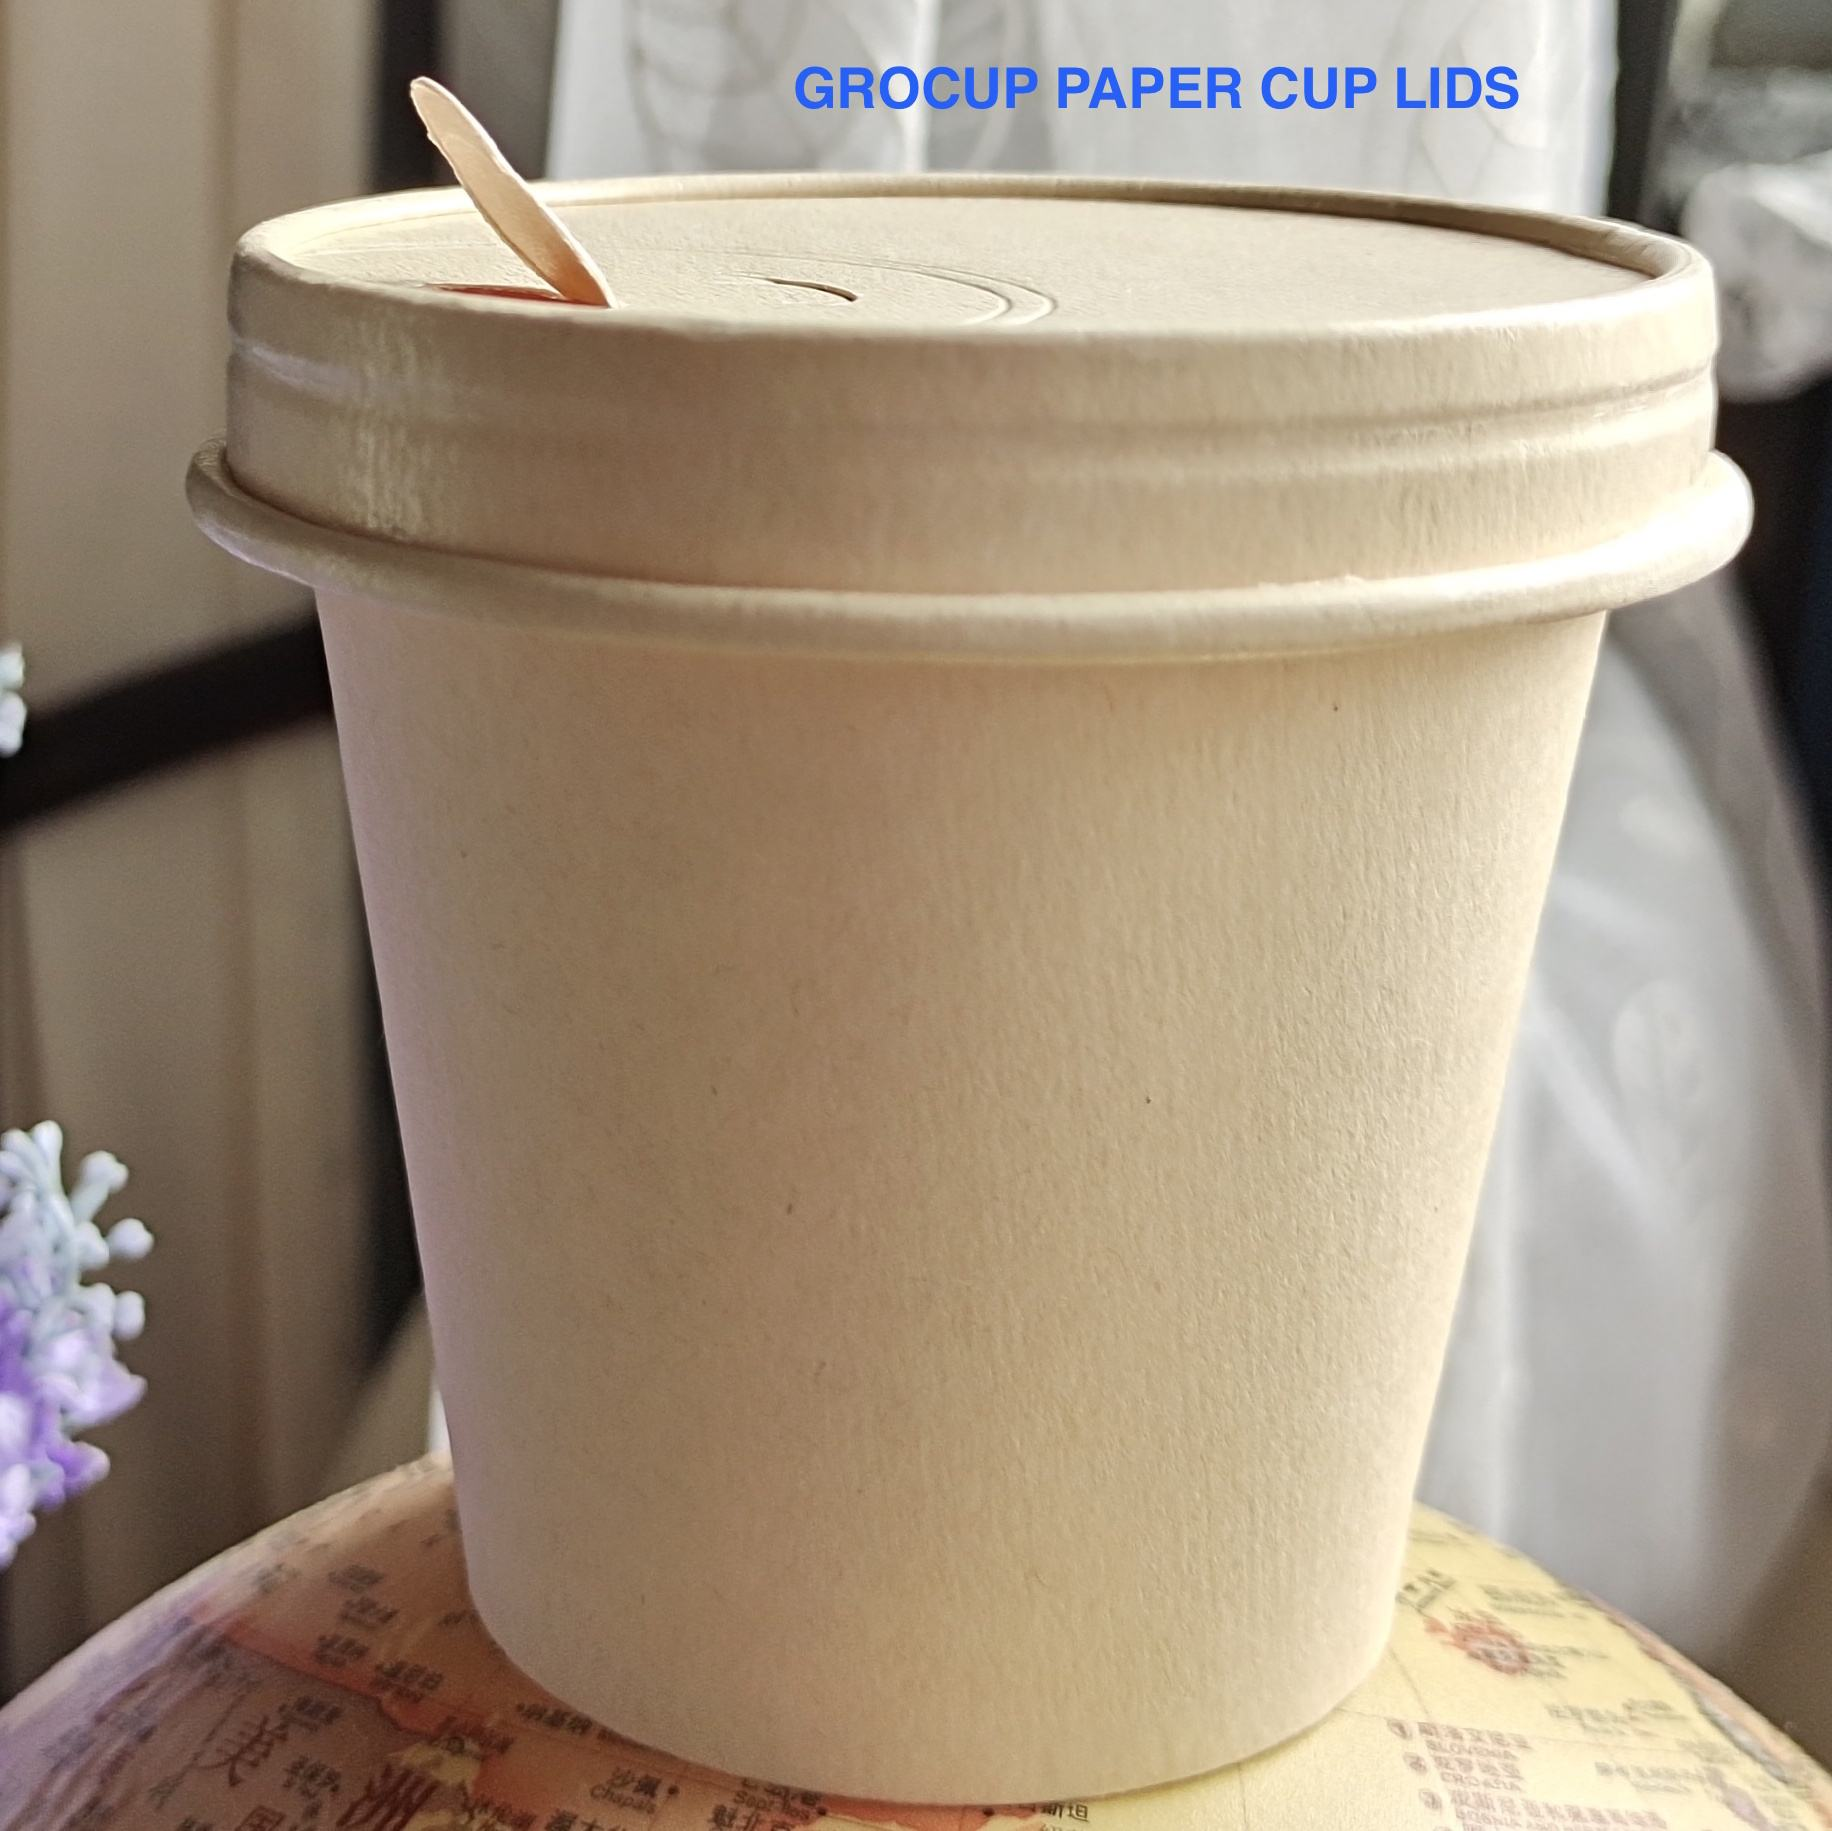 Varnishing [ Paper Cup Coffee ] PAPER CUP FACTORY SPECIALIZE IN PAPER LIDS NEW REVOLUTION FOR COFFEE CUP AND COLD CUP 100% NATURAL PAPER DEGRADABLE COMPOSTABLE